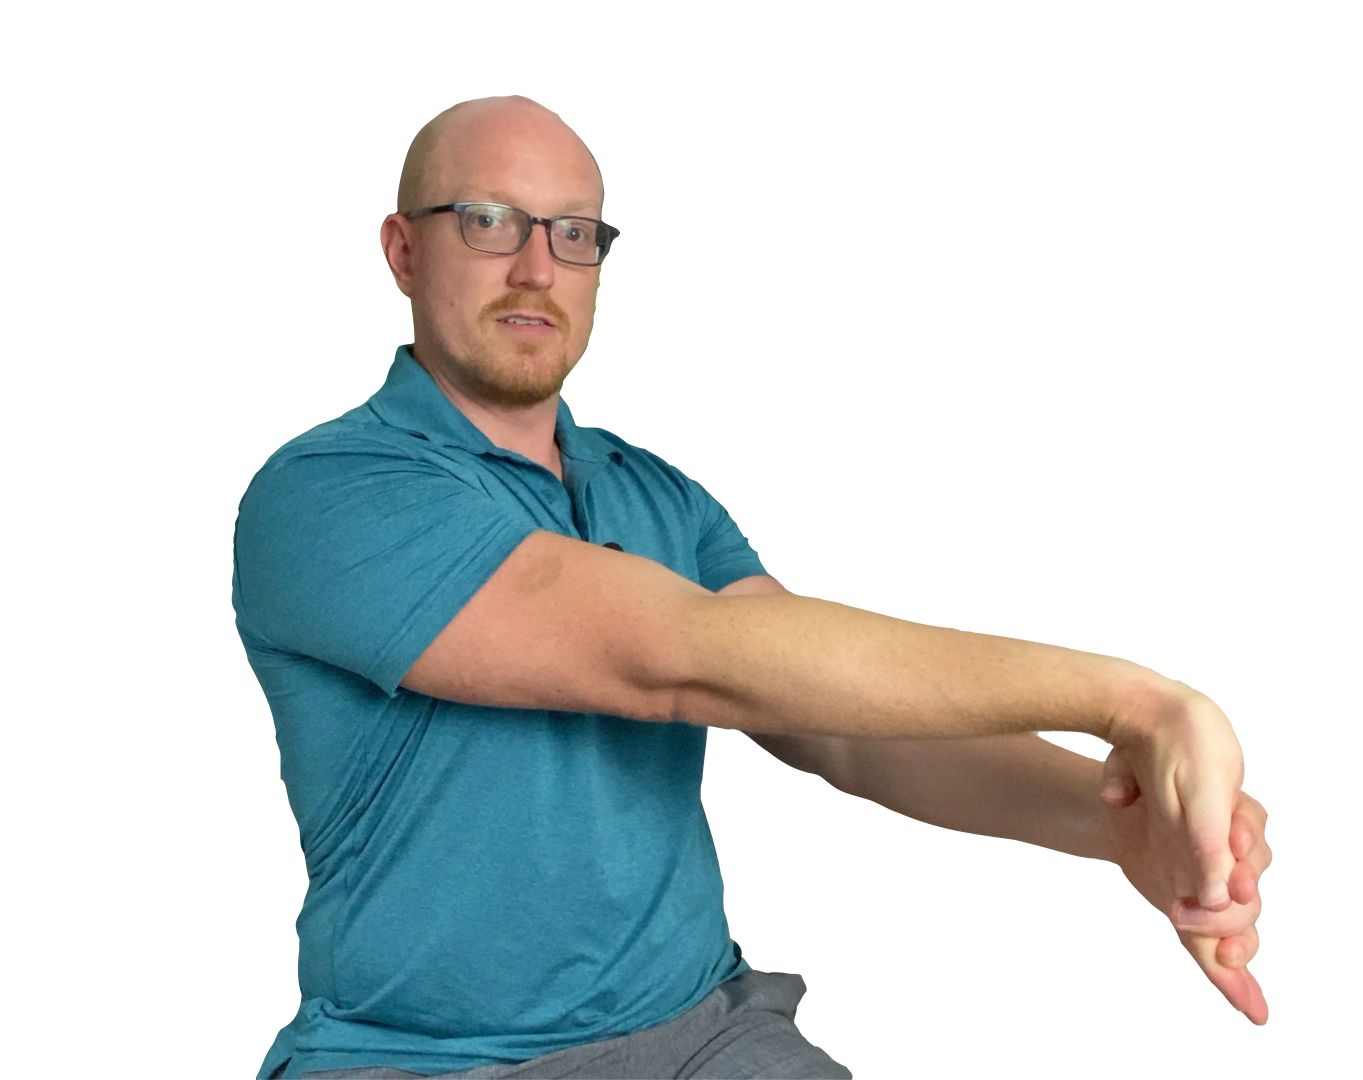 Wrist Extension Stretch for Carpal Tunnel Syndrome